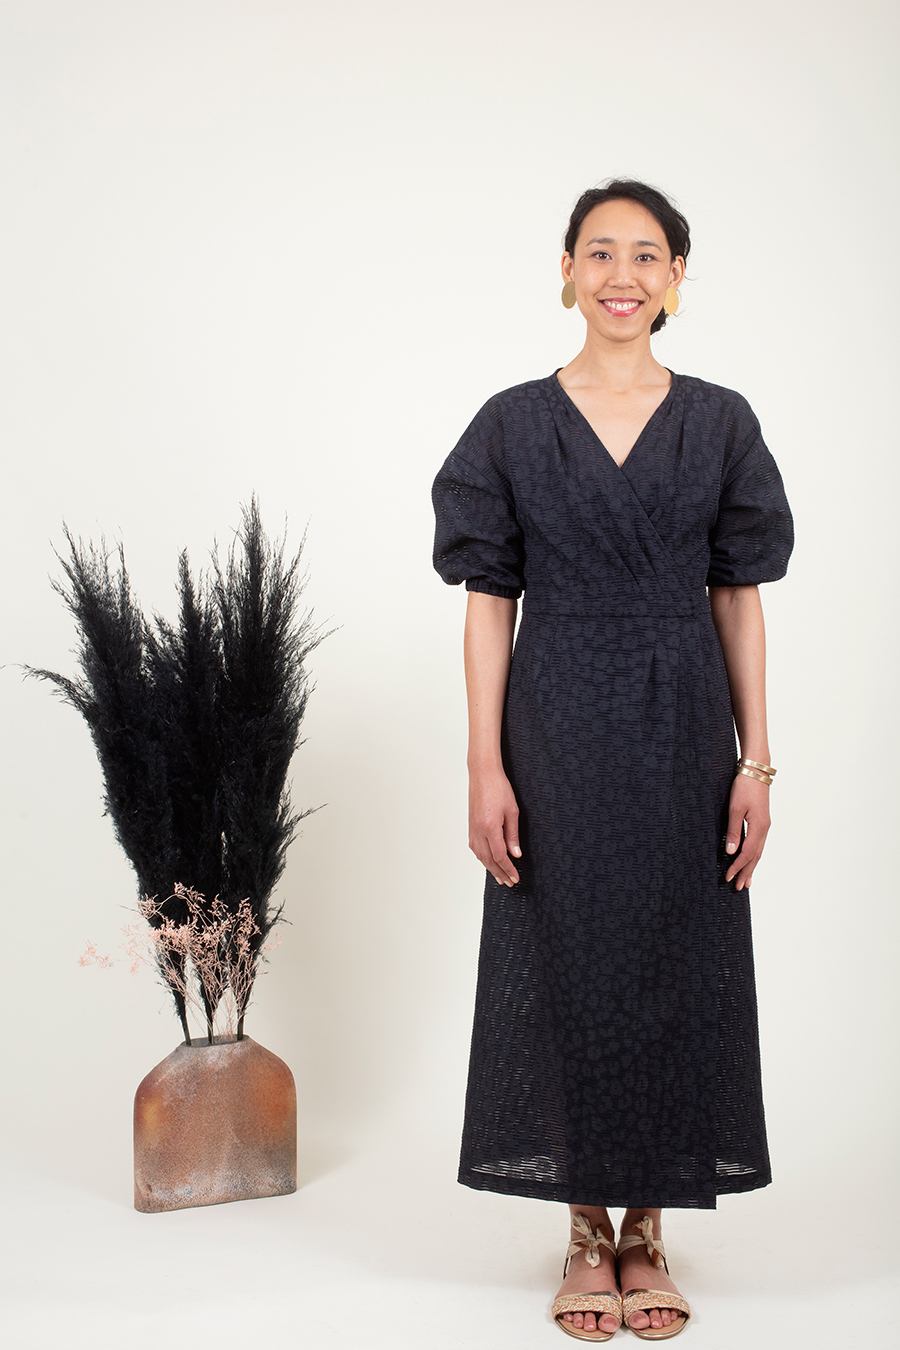 Ose Patterns - PEMA dress with sleeves - front view